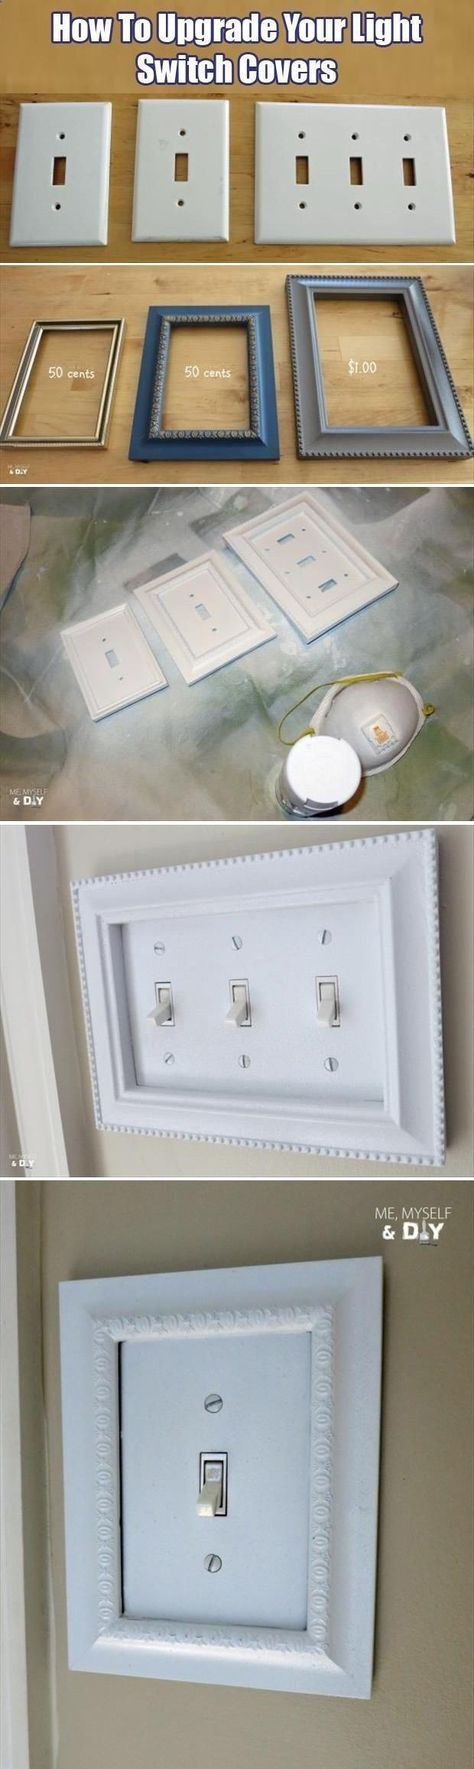 40 Easy Diys That Will Instantly Upgrade Your Home Switch Covers Light Wiring